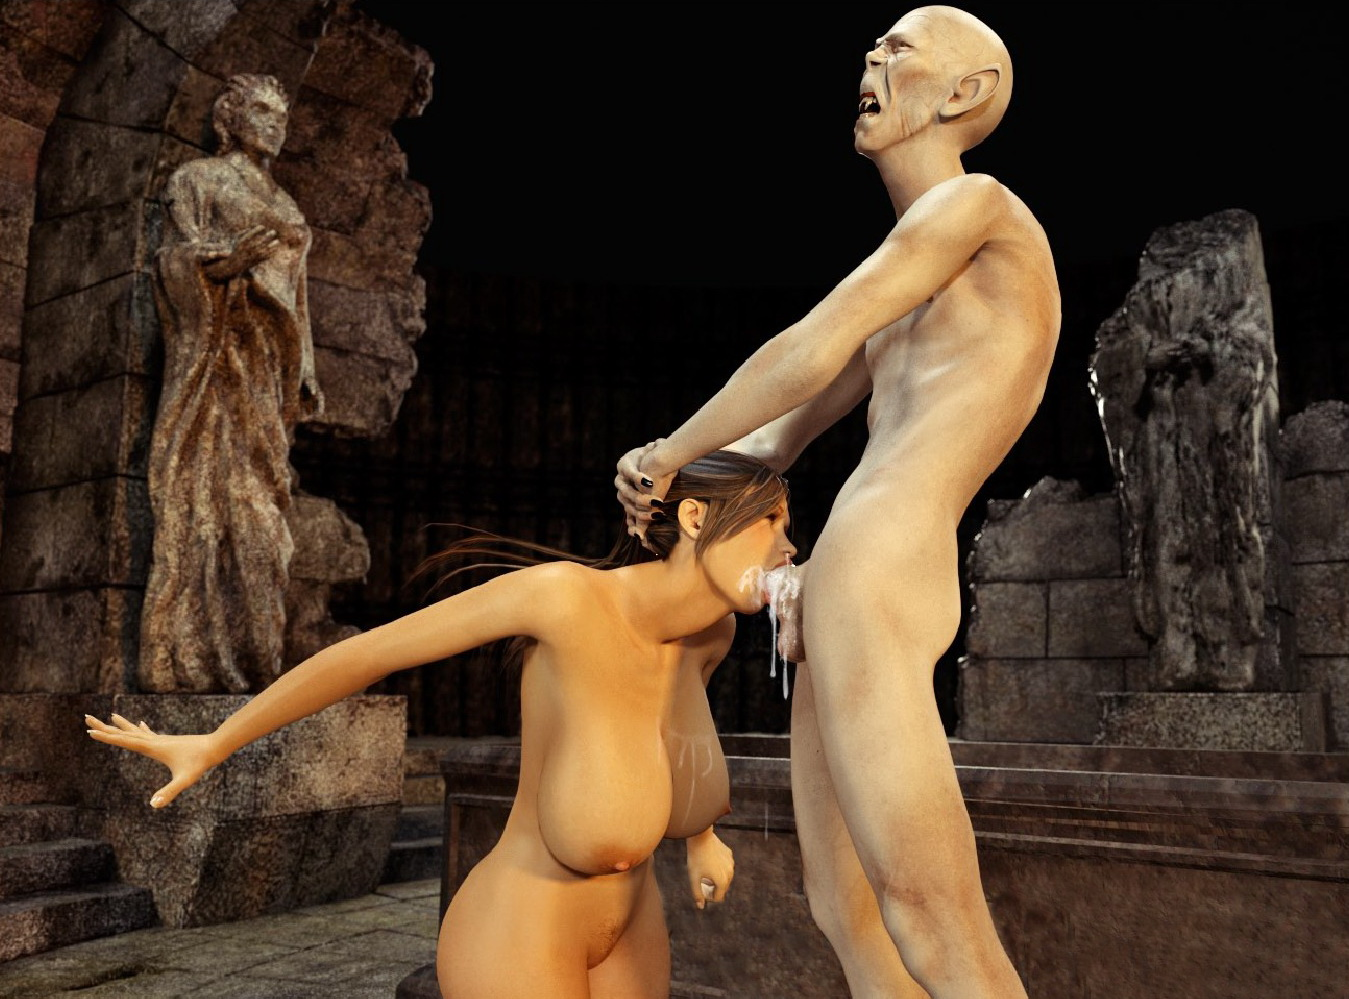 Sex3d tomb raider smut image